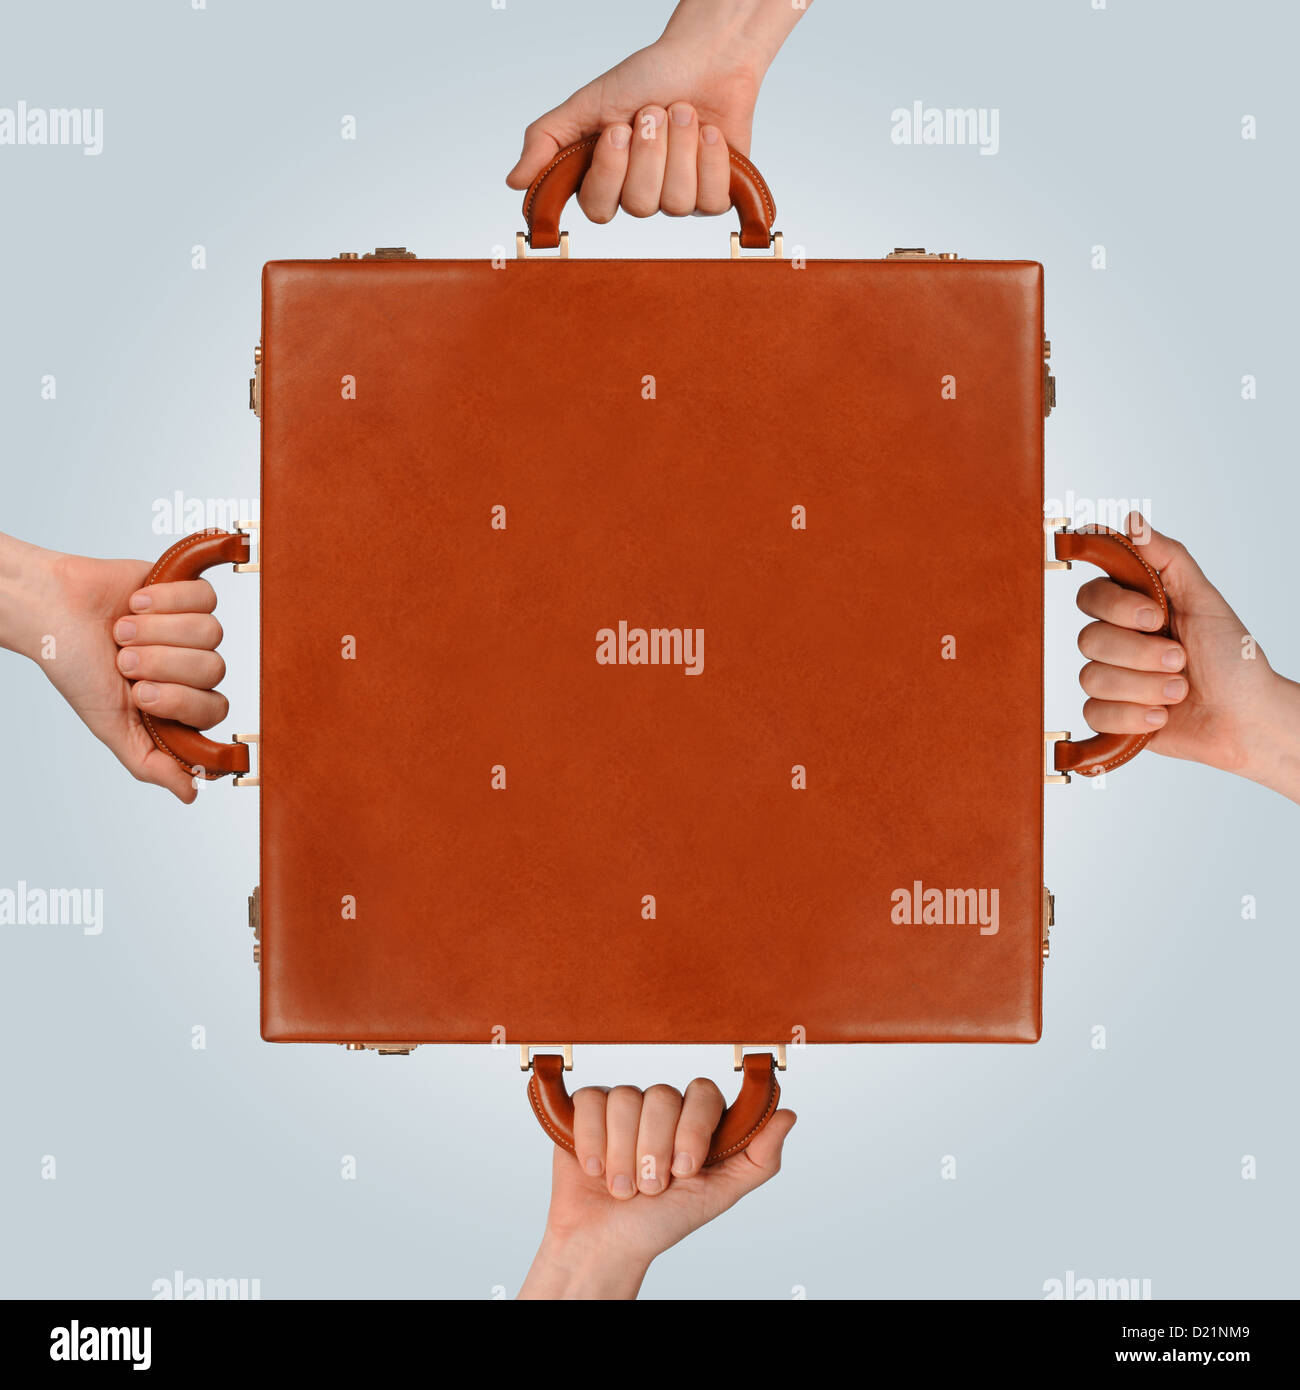 business teamwork concept showing multiple hands holding a briefcase - Stock Image